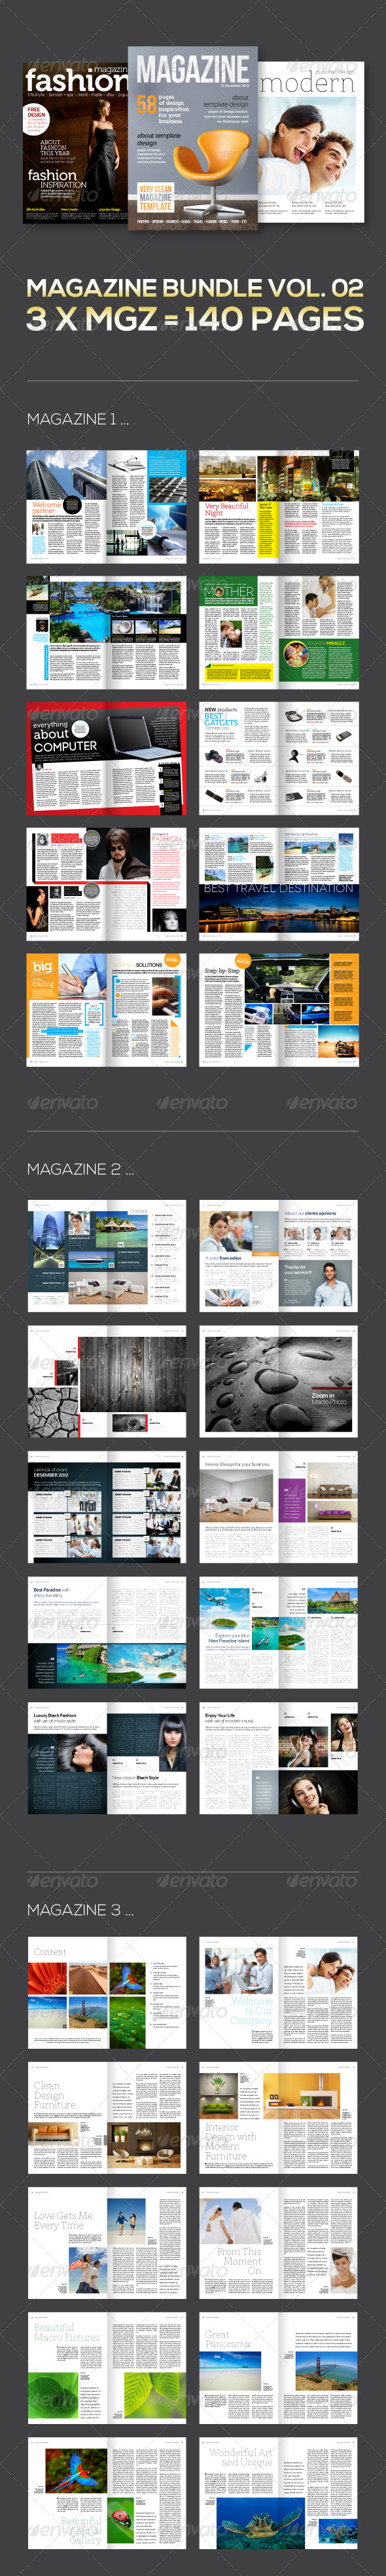 3 X Magazine Collection (Mgz Bundle Vol. 02) - Magazines Print Templates